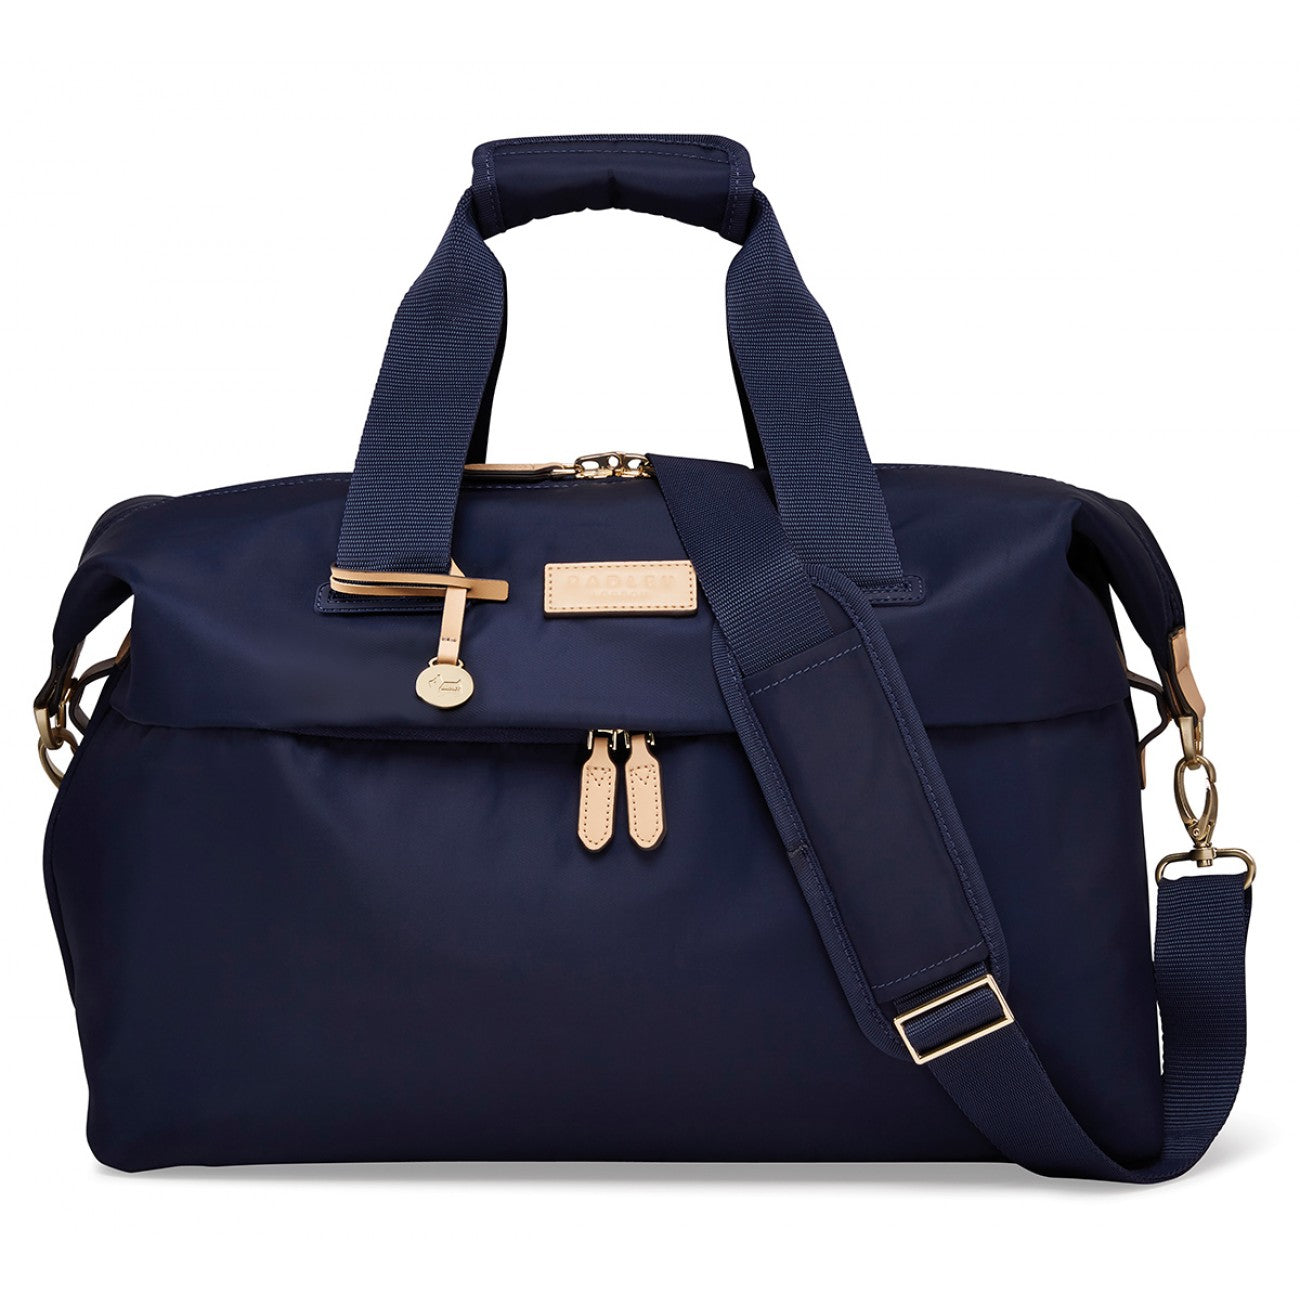 Radley Travel Essentials Cabin Duffle Bag